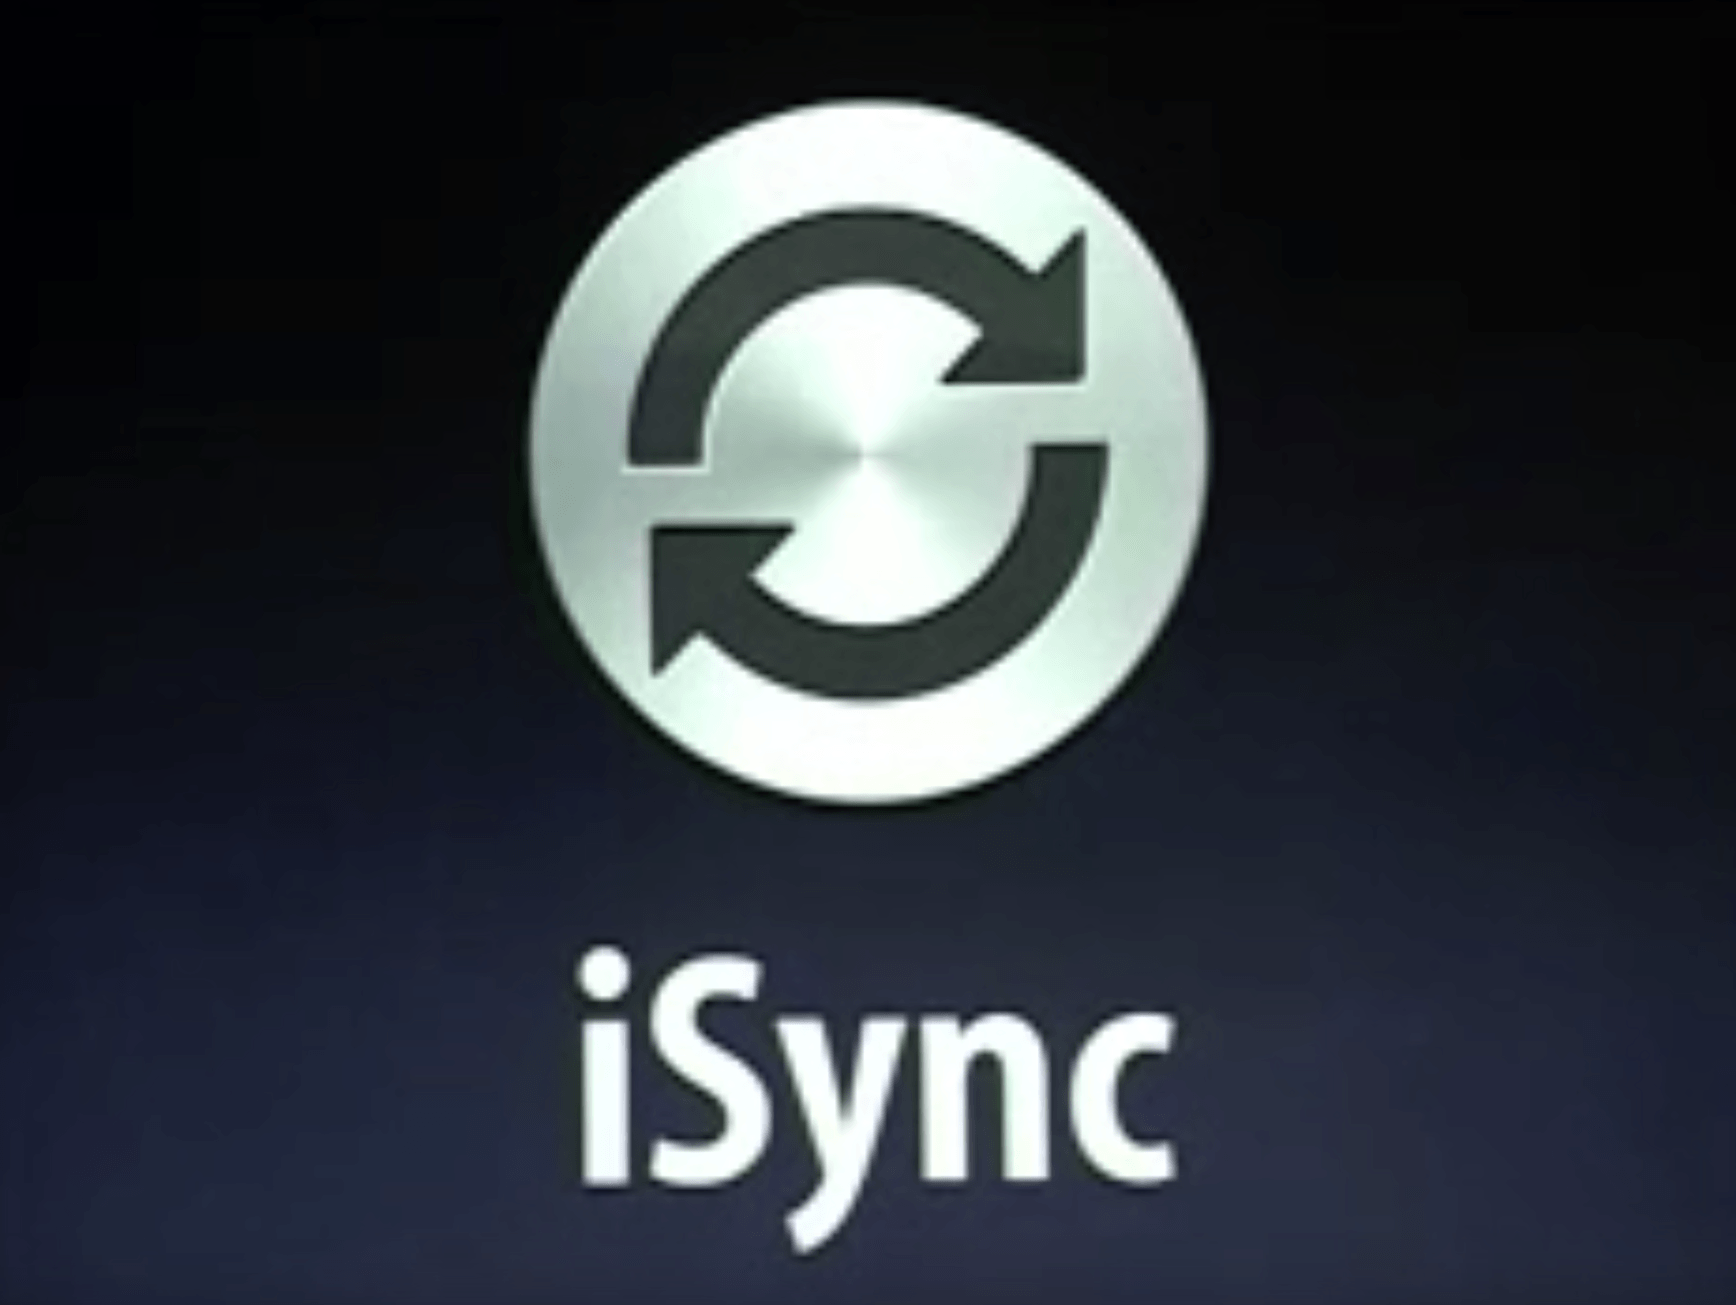 iSync was a killer app for its time.